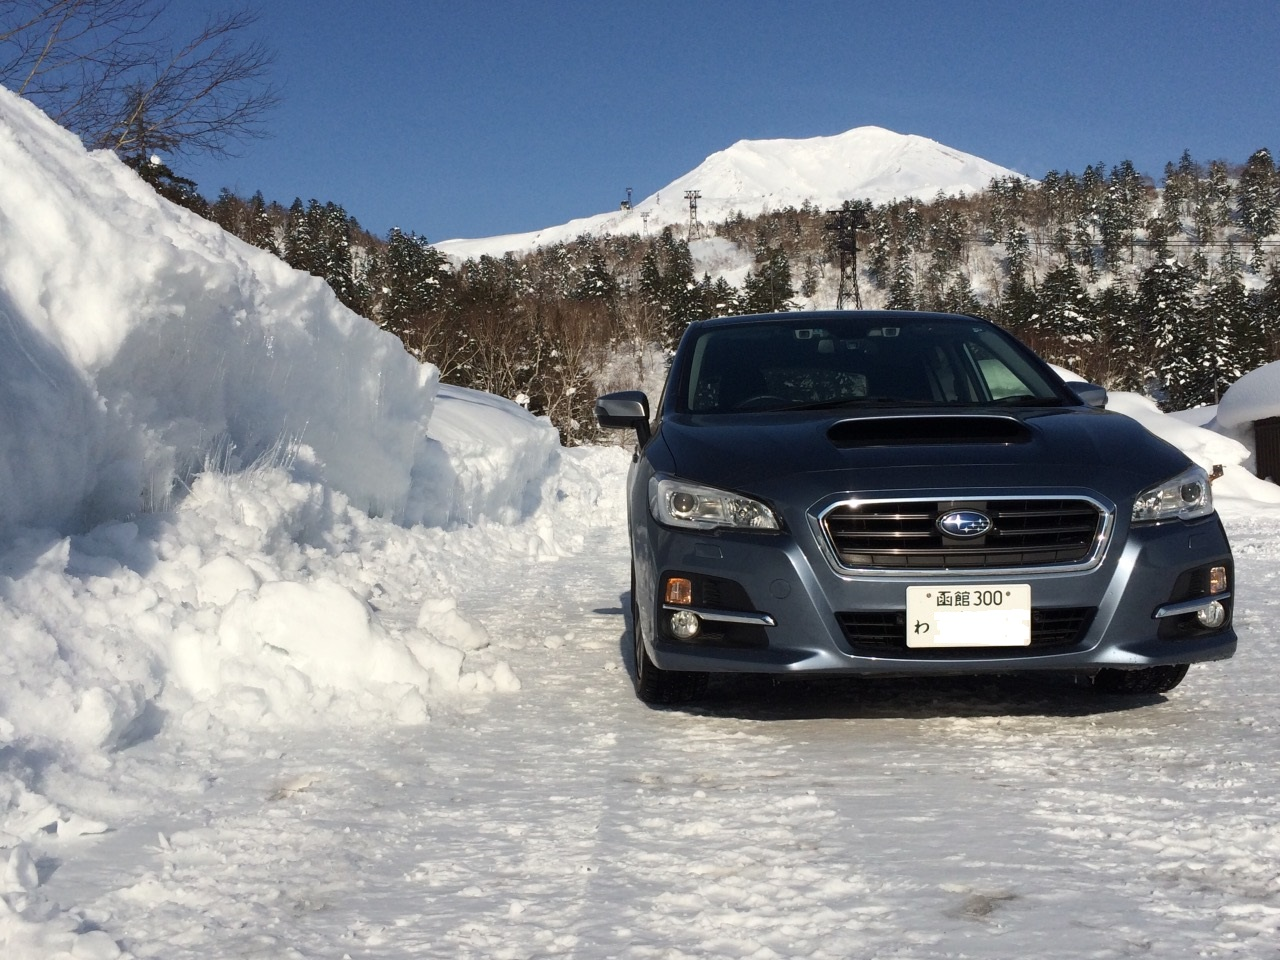 A Toocool car enjoying sun and snow